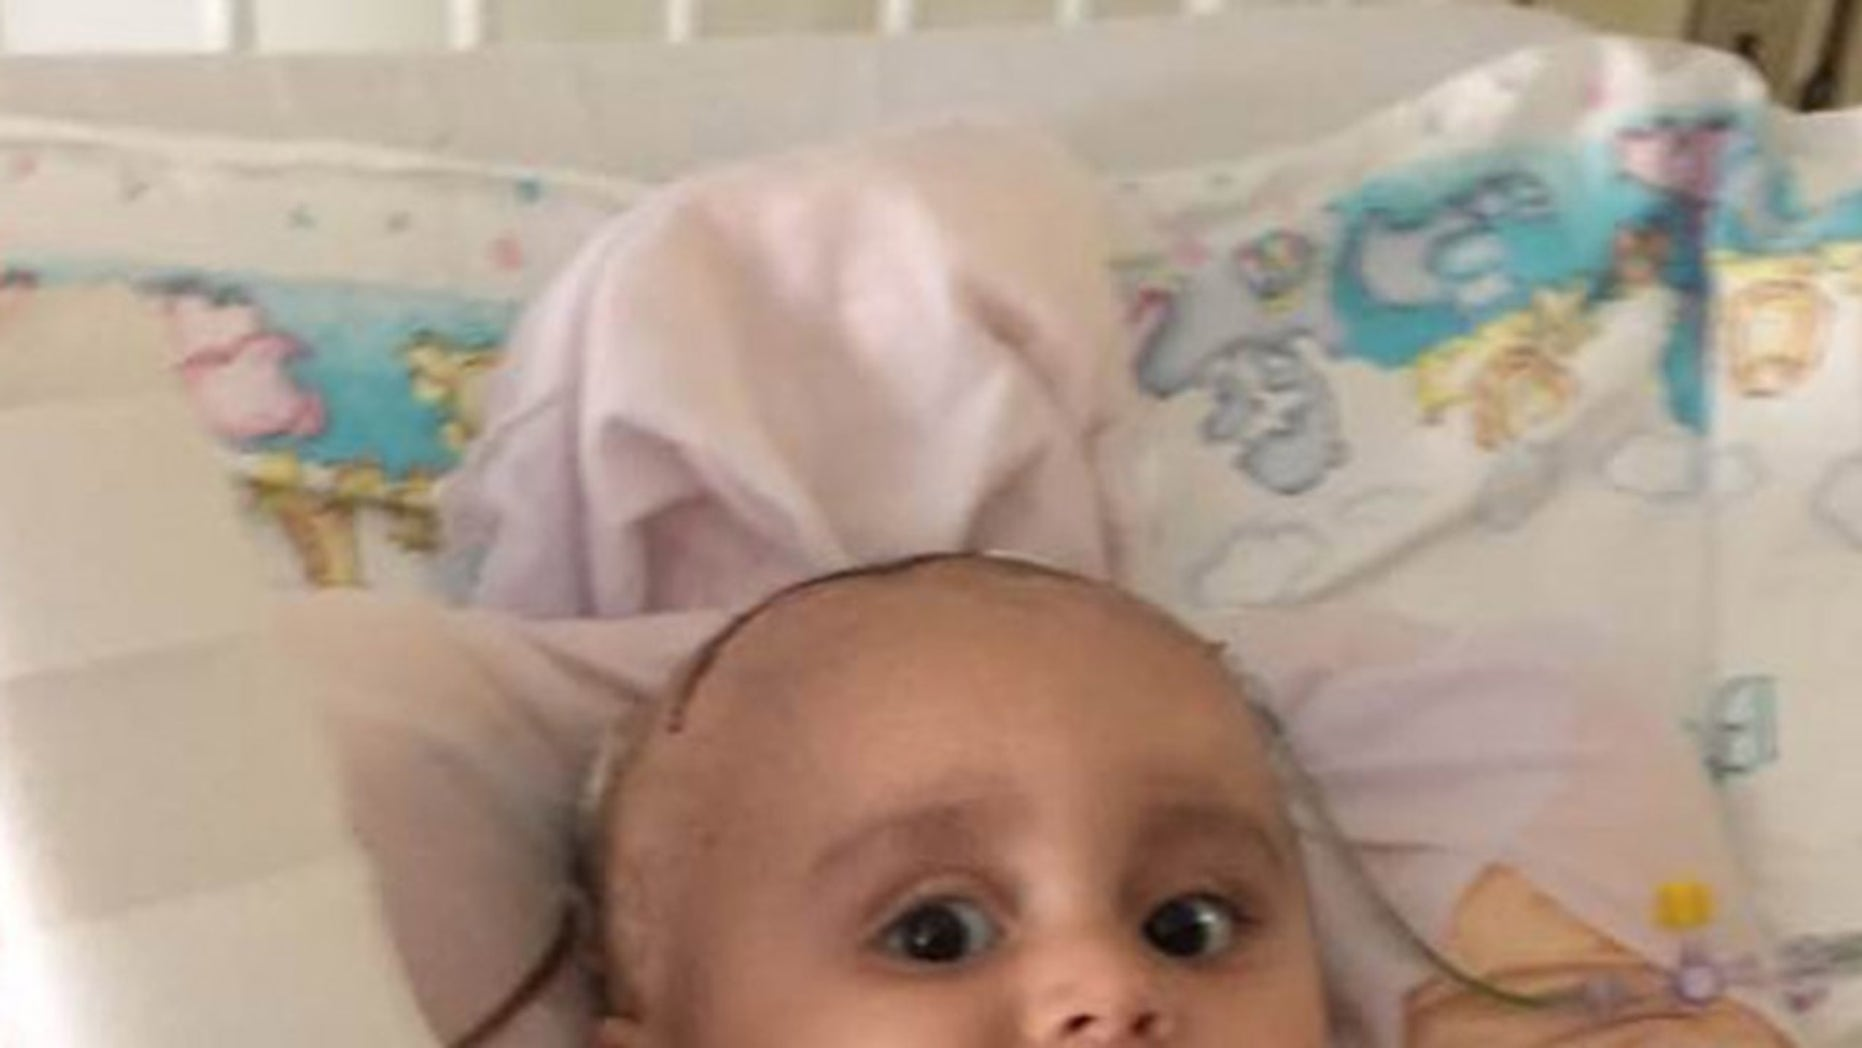 The family's insurance company allegedly sent 9-month-old Connor a letter denying a request for coverage after he was enrolled in a clinical trial to treat aggressive brain cancer.